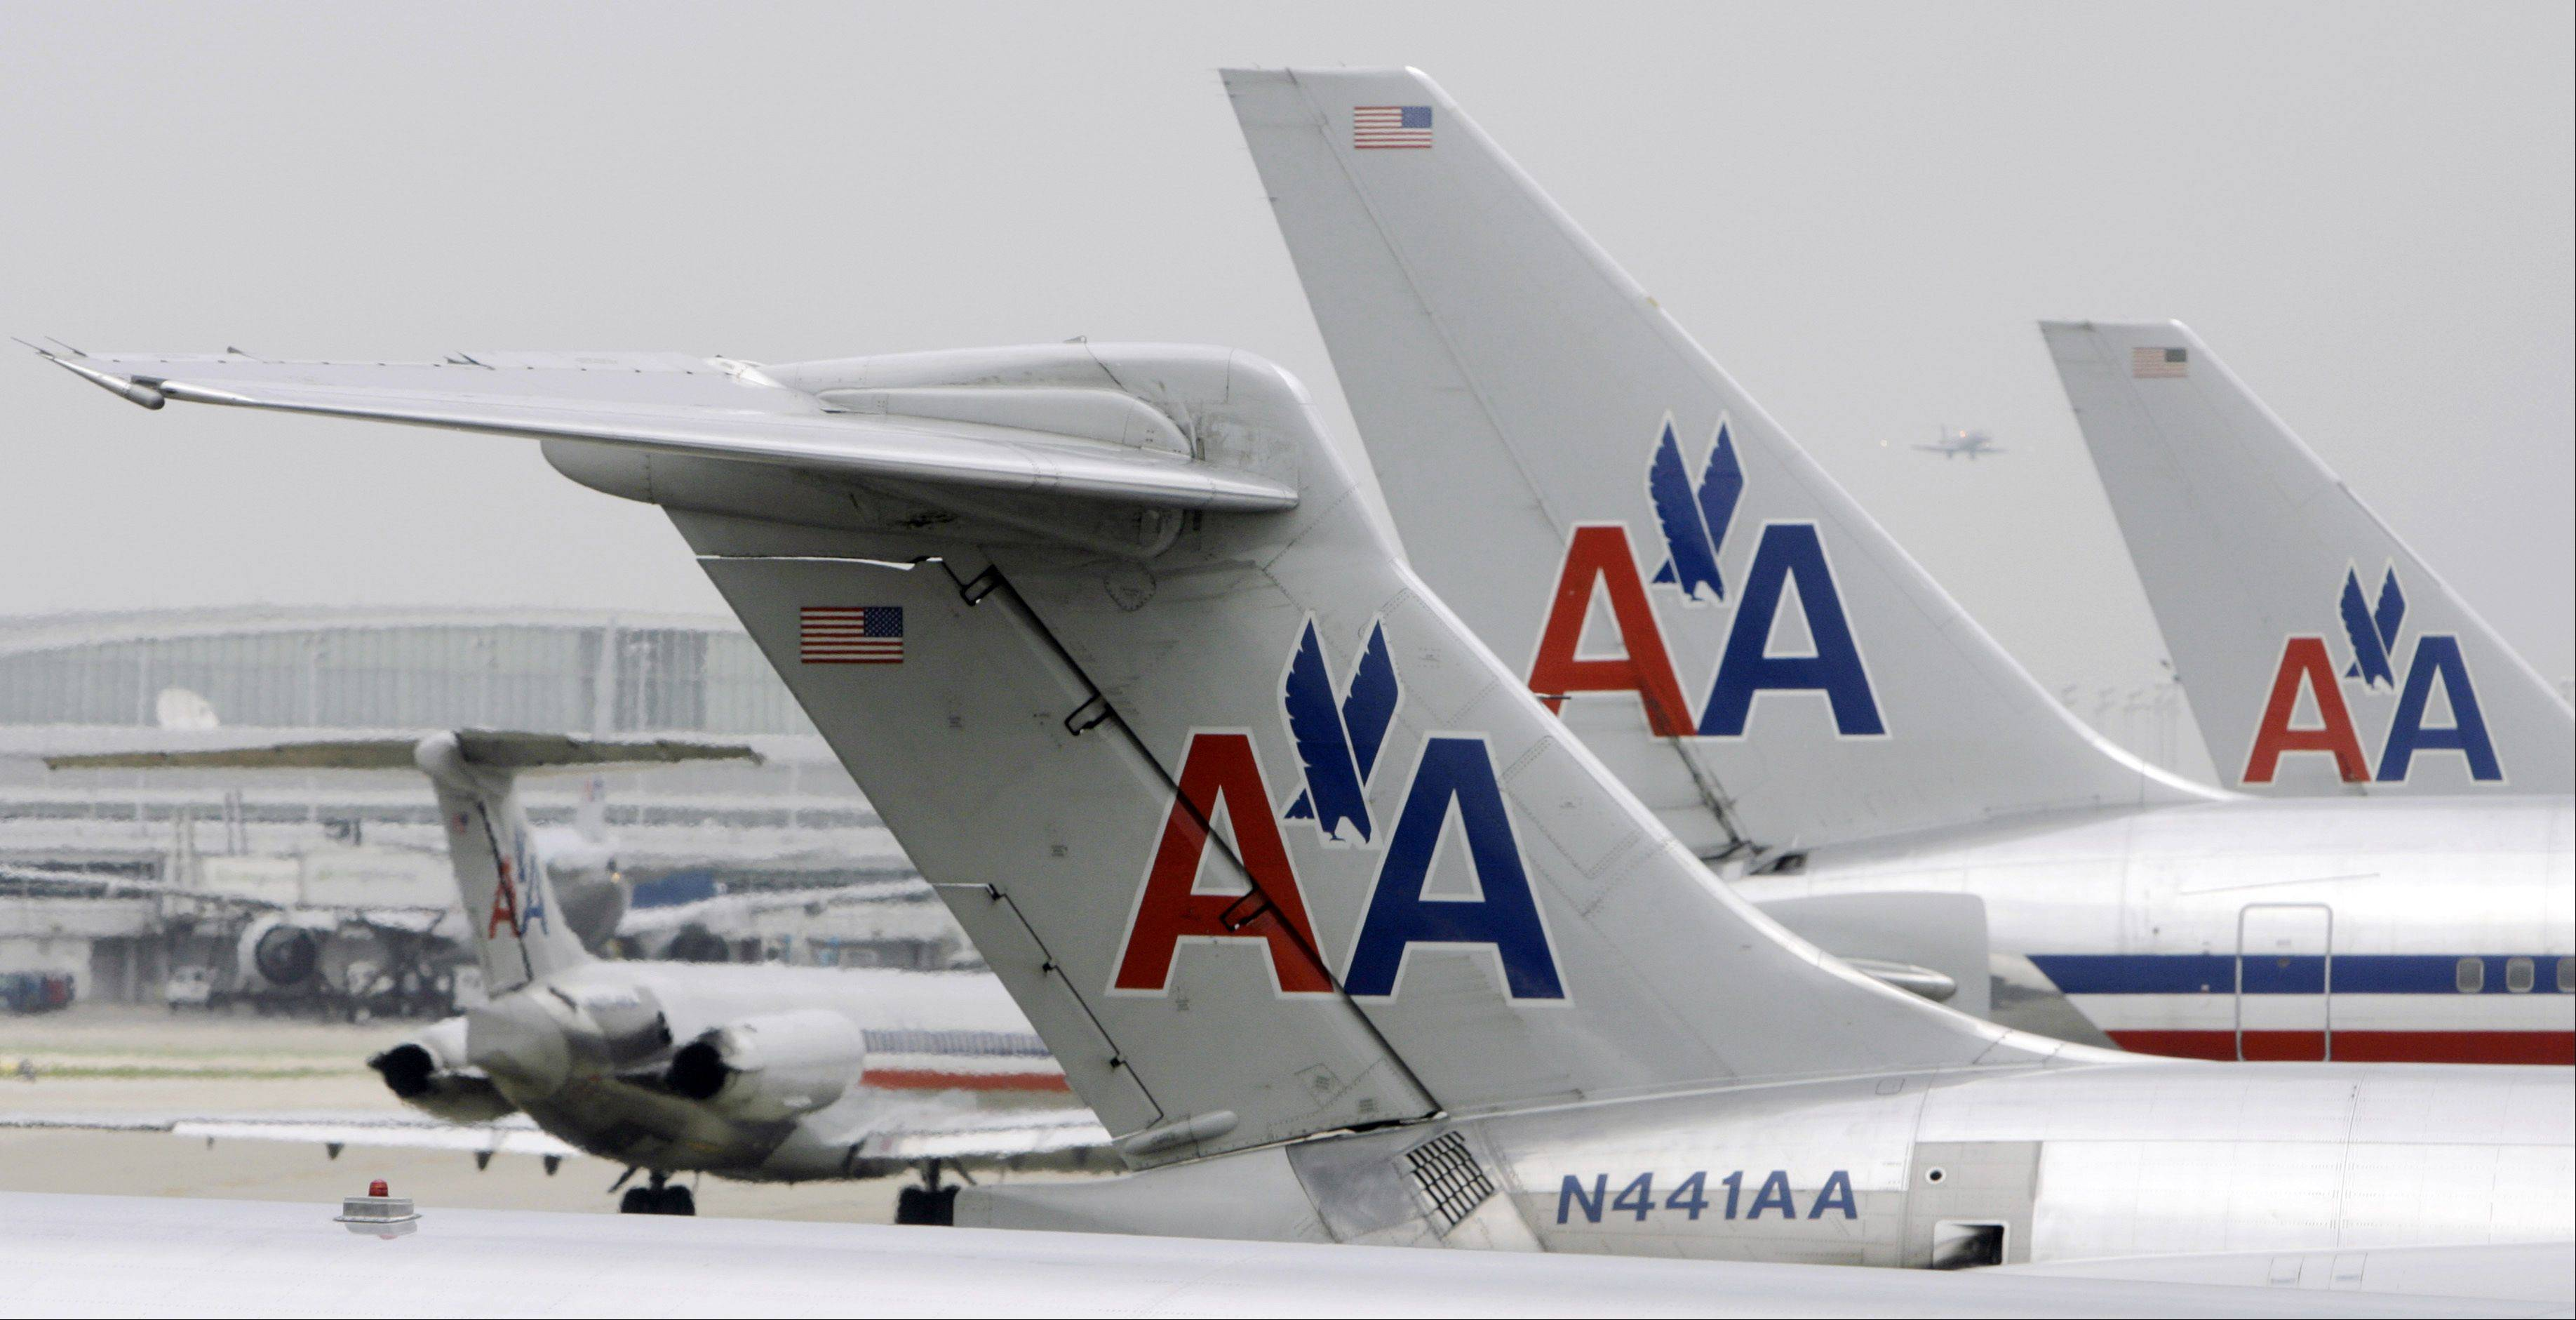 AMR, the parent company of American Airlines, is sending out thousands of layoff notices.